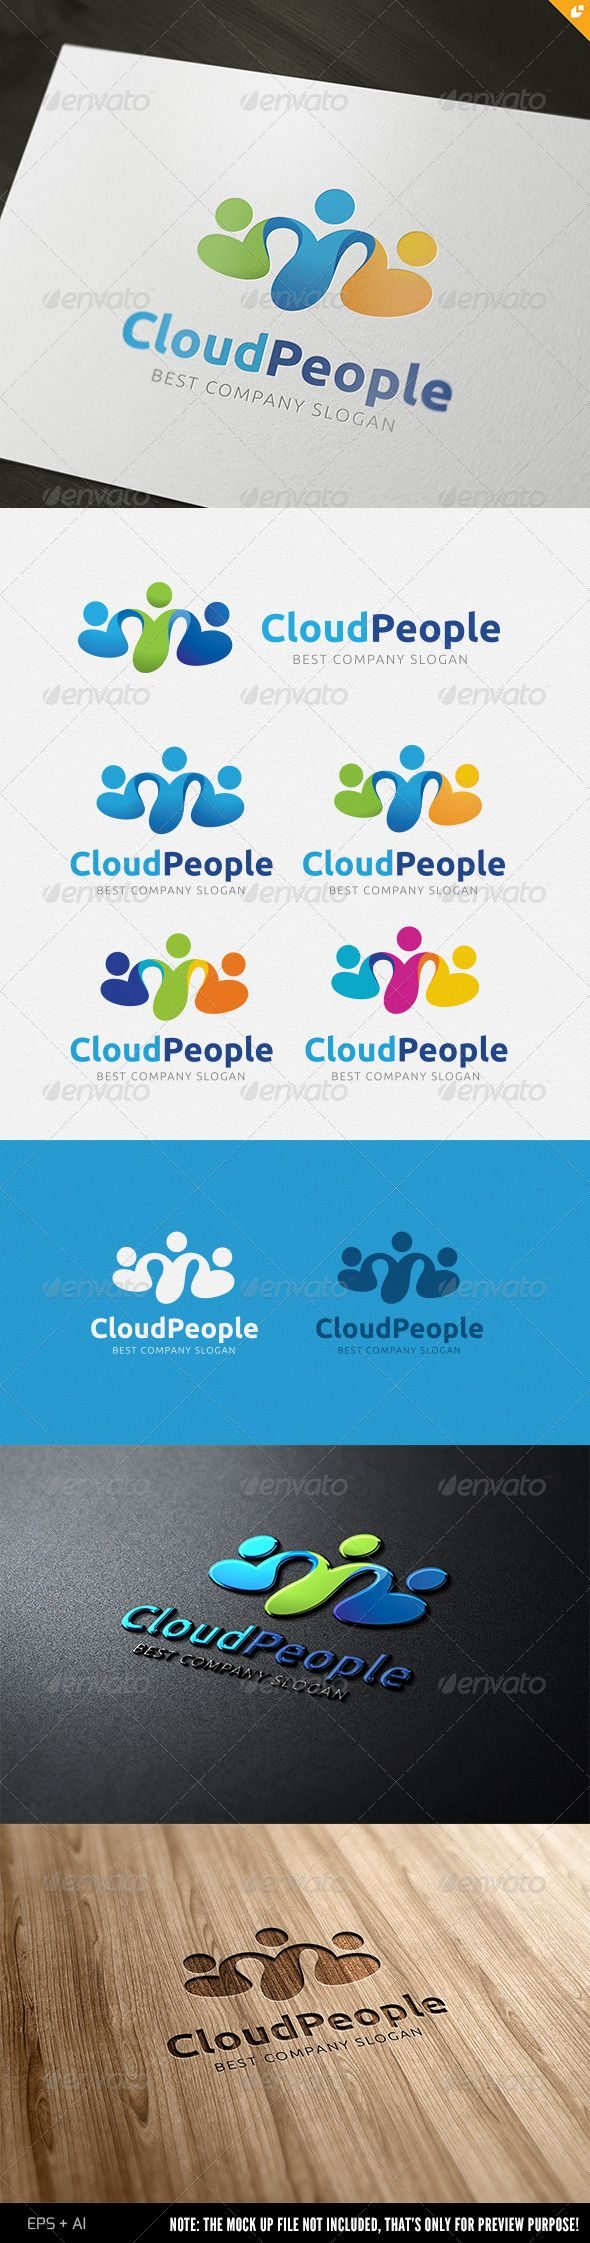 Cloud People Logo #GraphicRiver This logo design for all creative business. Consulting, Excellent logo,simple an